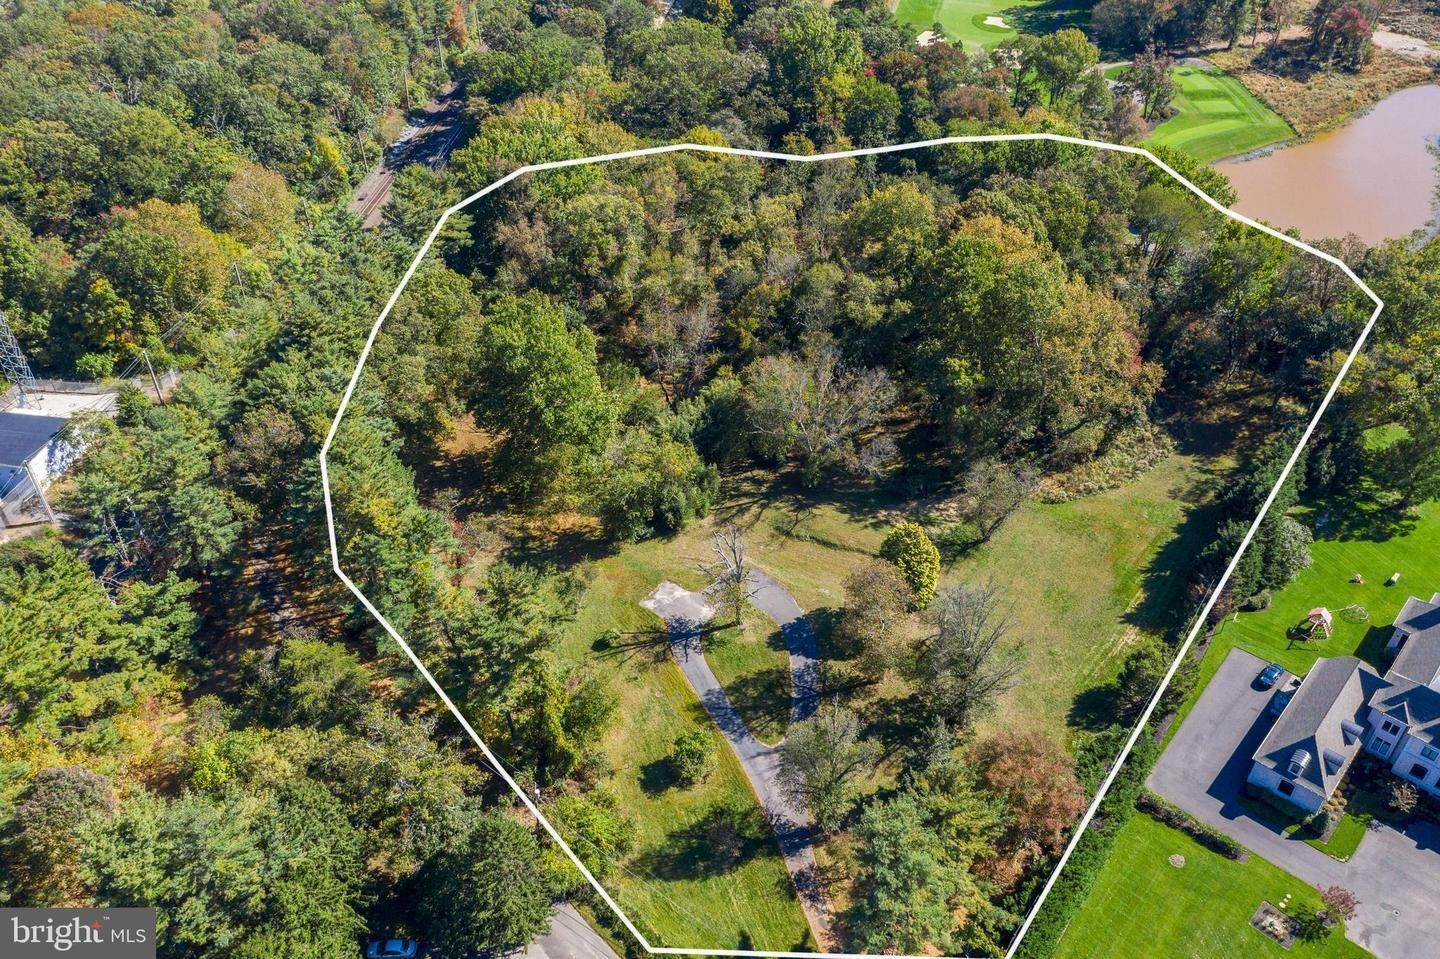 18. Land for Sale at 10 LANE OF ACRES Haddonfield, New Jersey 08033 United States